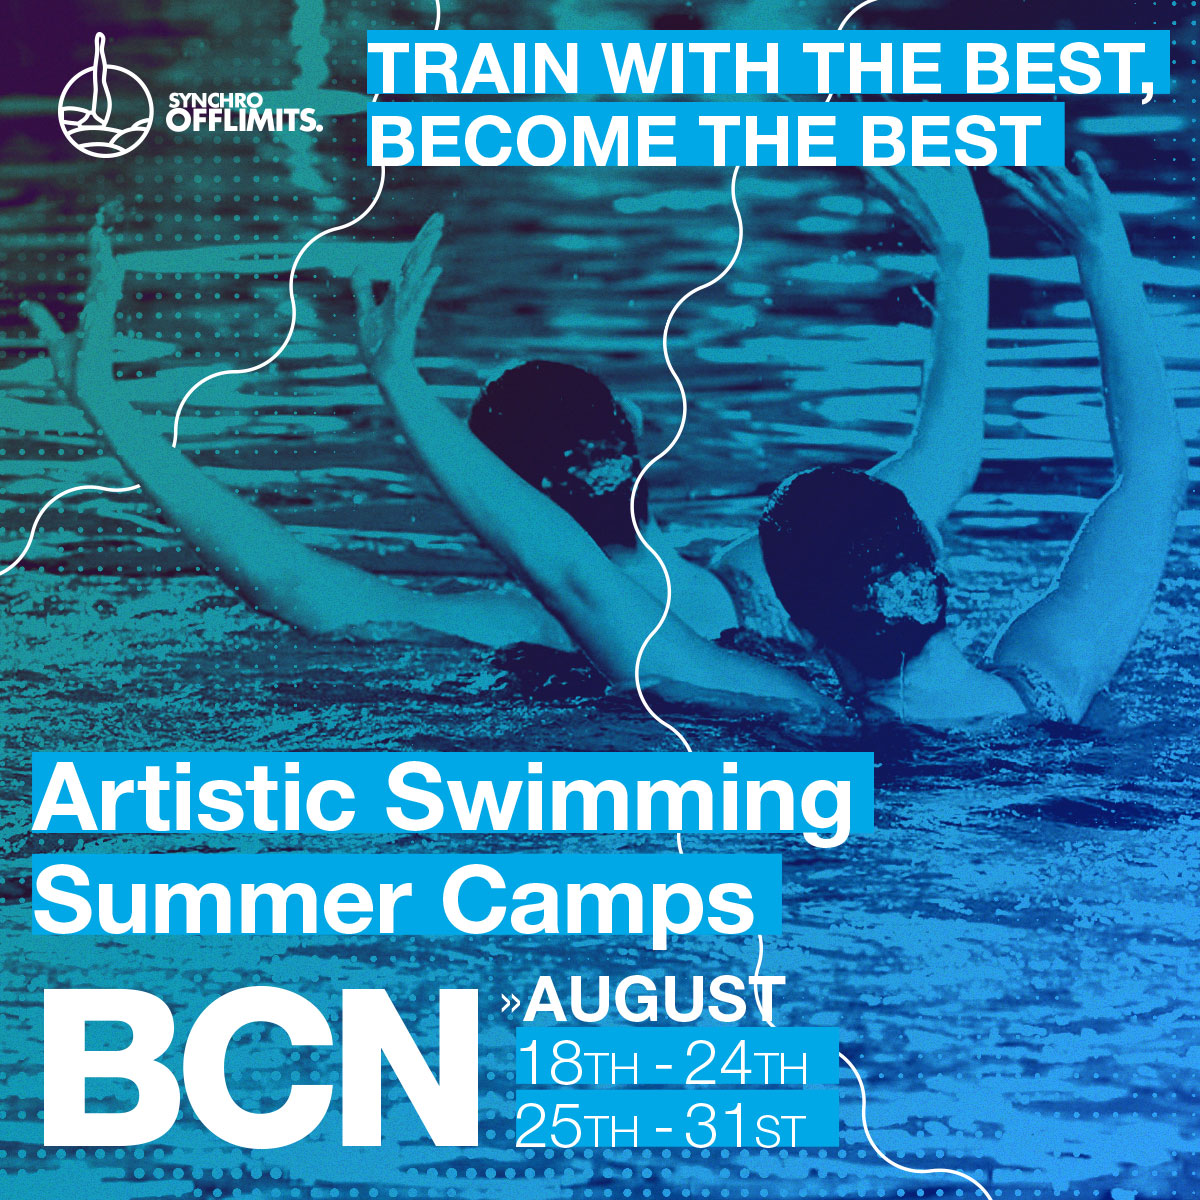 Artistic Swimming – FULL BOARD ACCOMMODATION BCN